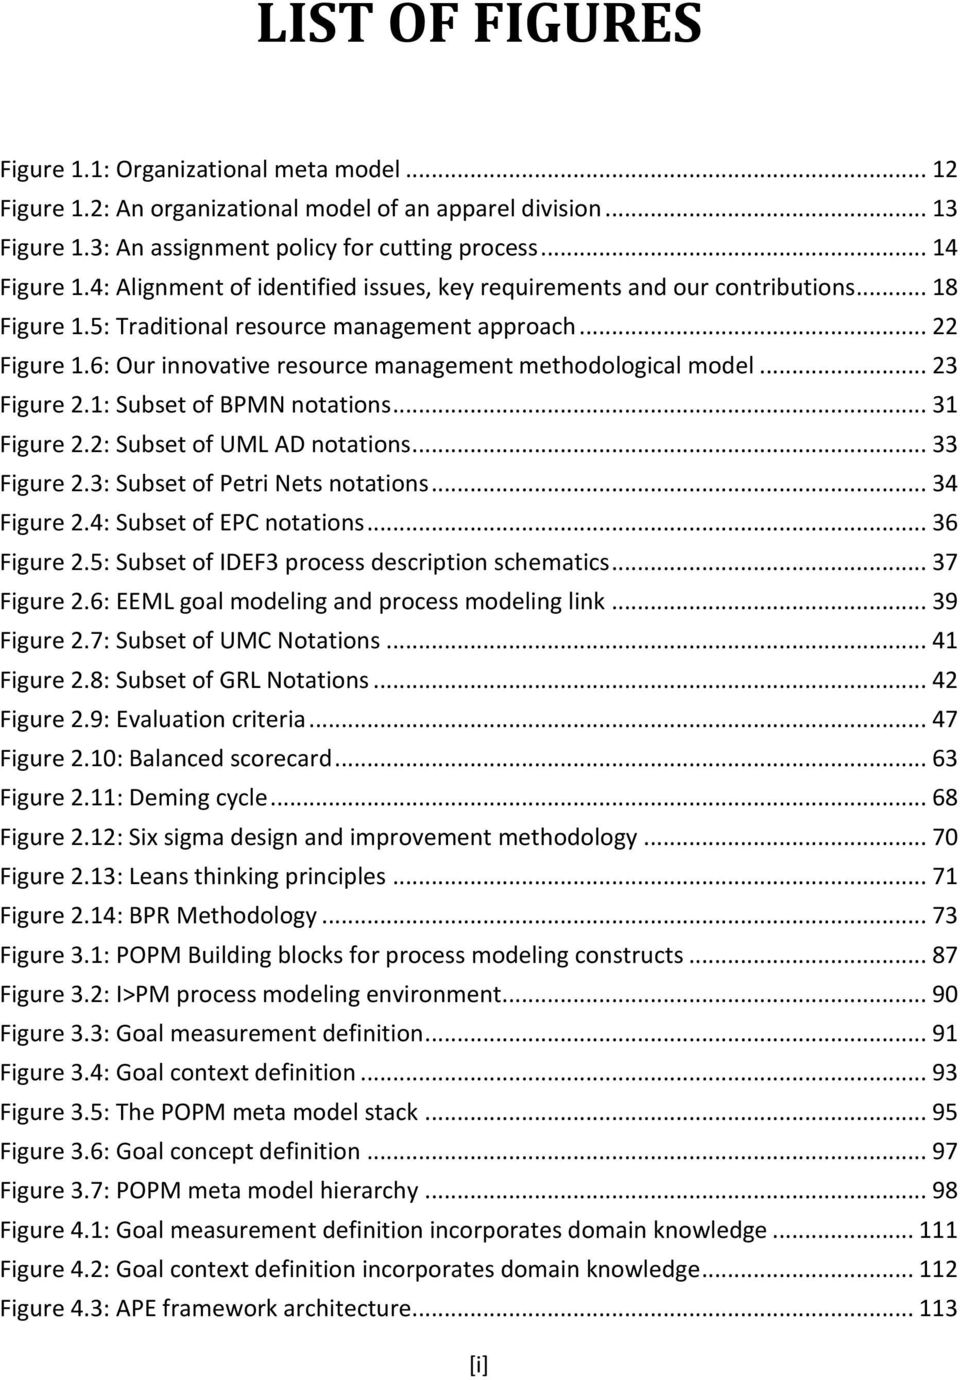 6: Our innovative resource management methodological model... 23 Figure 2.1: Subset of BPMN notations... 31 Figure 2.2: Subset of UML AD notations... 33 Figure 2.3: Subset of Petri Nets notations.